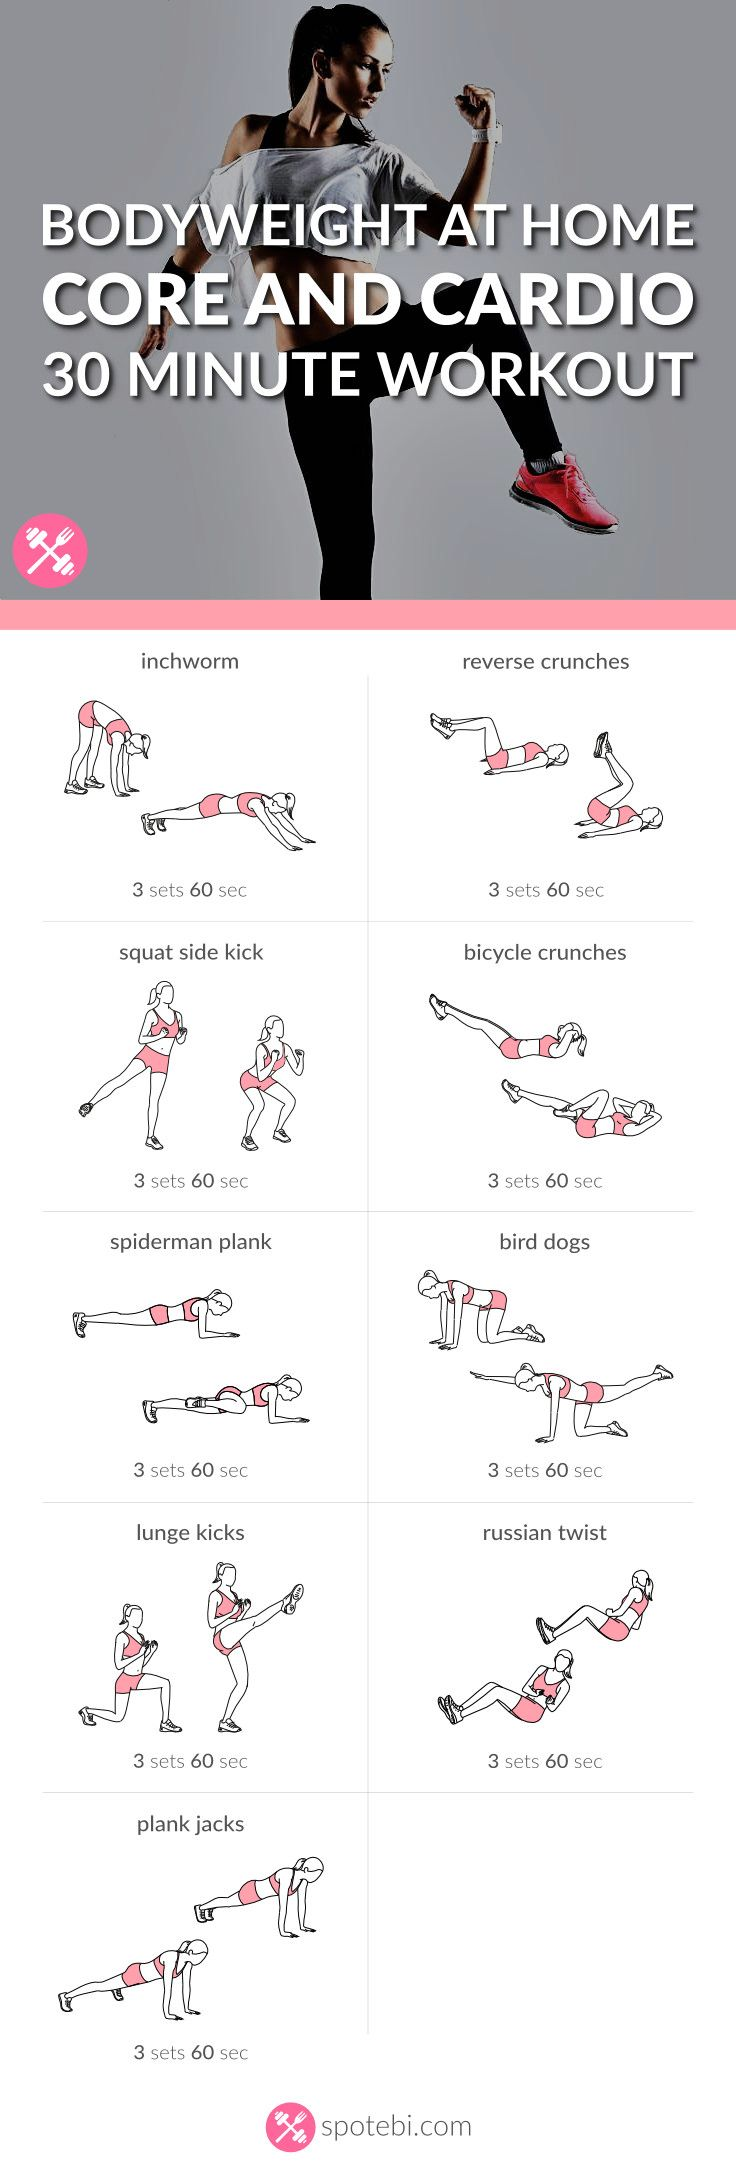 Work your abs, obliques and lower back with this core and cardio workout. Increase your aerobic fitness at home and get a toned, sculpted and slim belly. http://www.spotebi.com/workout-routines/bodyweight-at-home-core-and-cardio-workout/